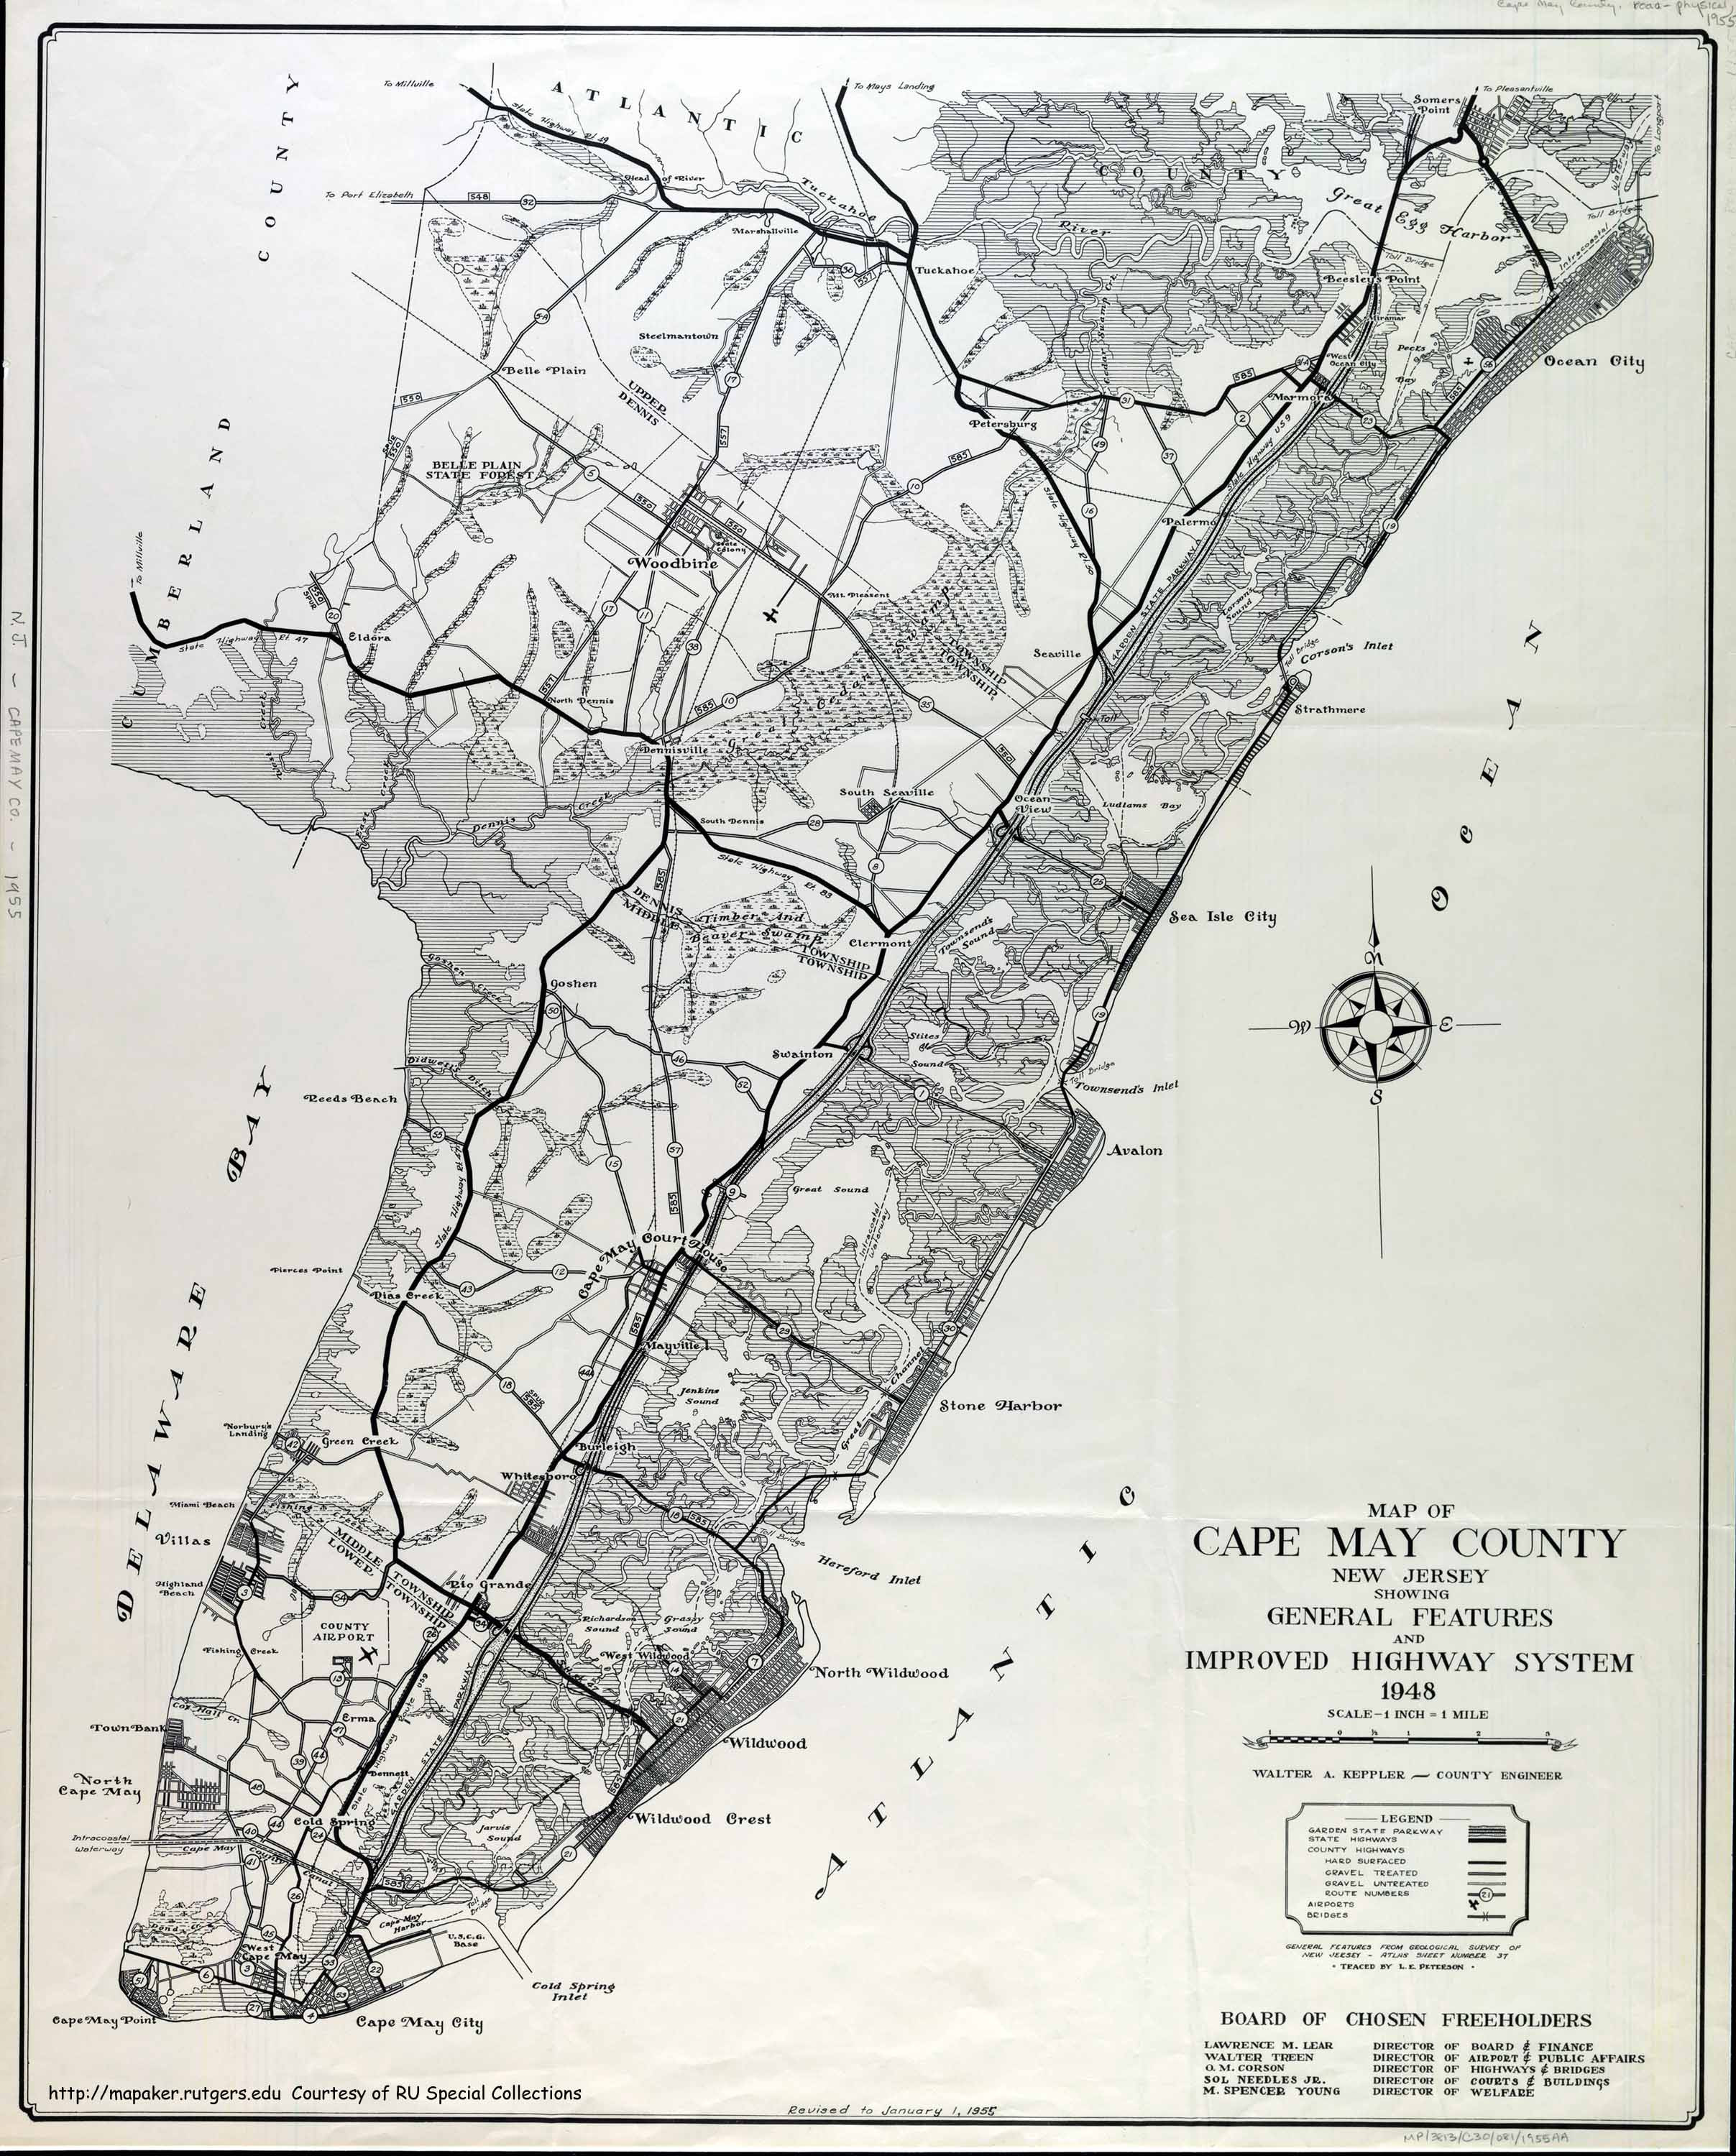 Historical Cape May County New Jersey Maps